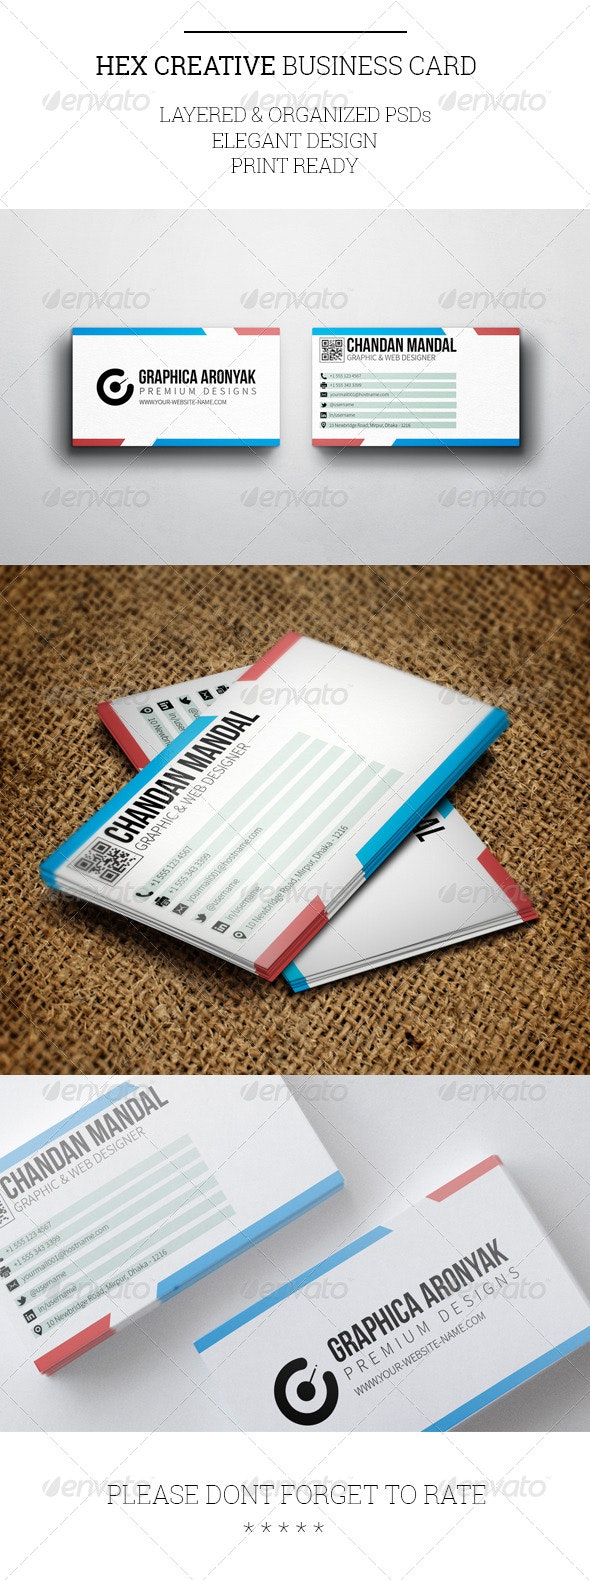 Hex Creative Business Card Template - Creative Business Cards